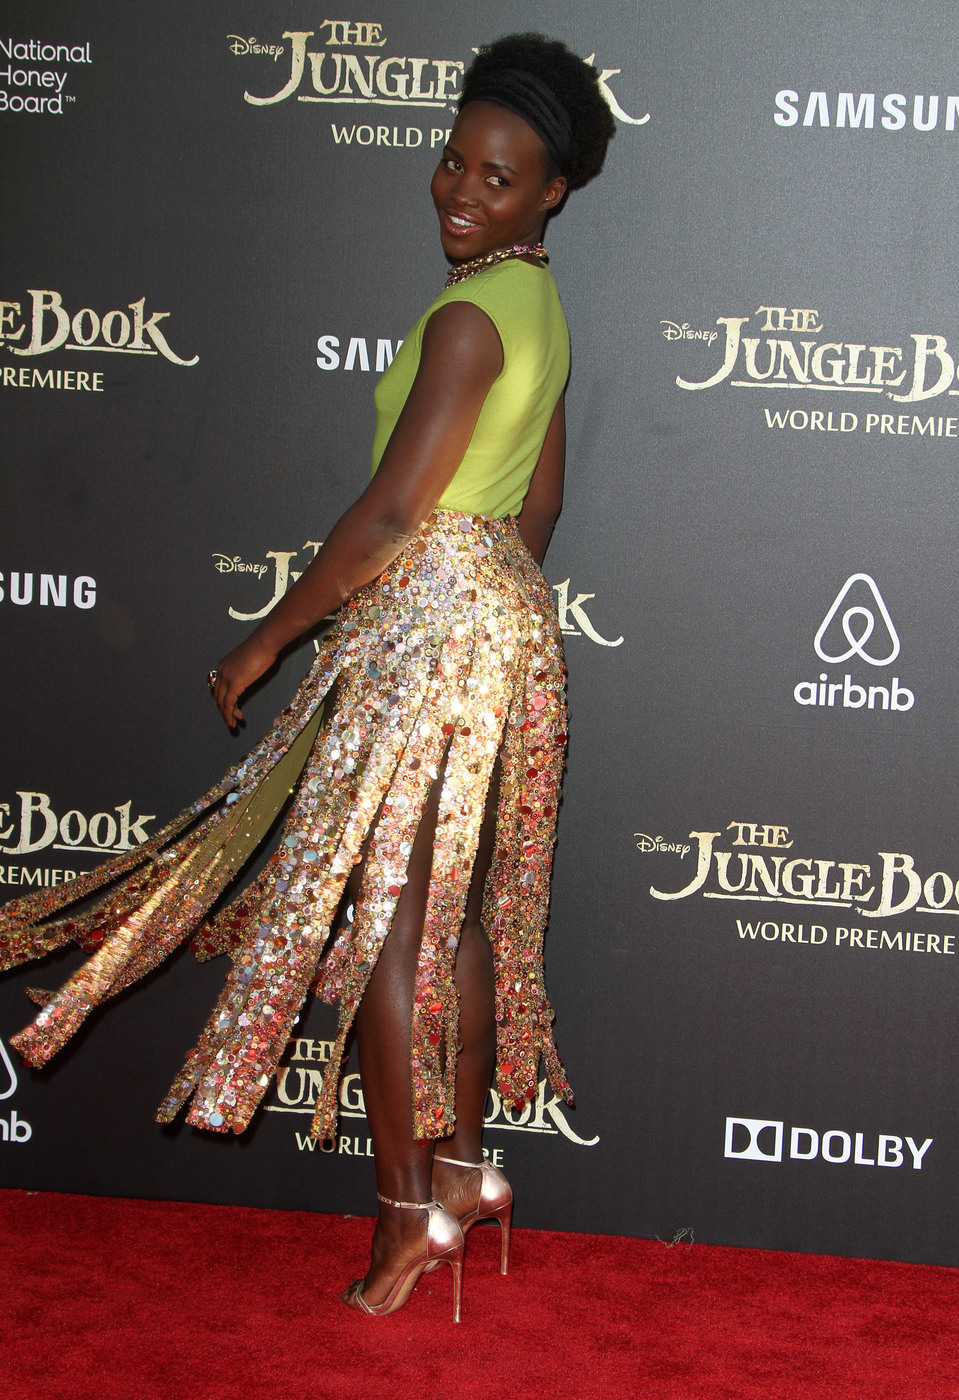 Lupita Nyong'o attends the premiere of 'The Jungle Book ' at El Capitan Theater, Hollywood